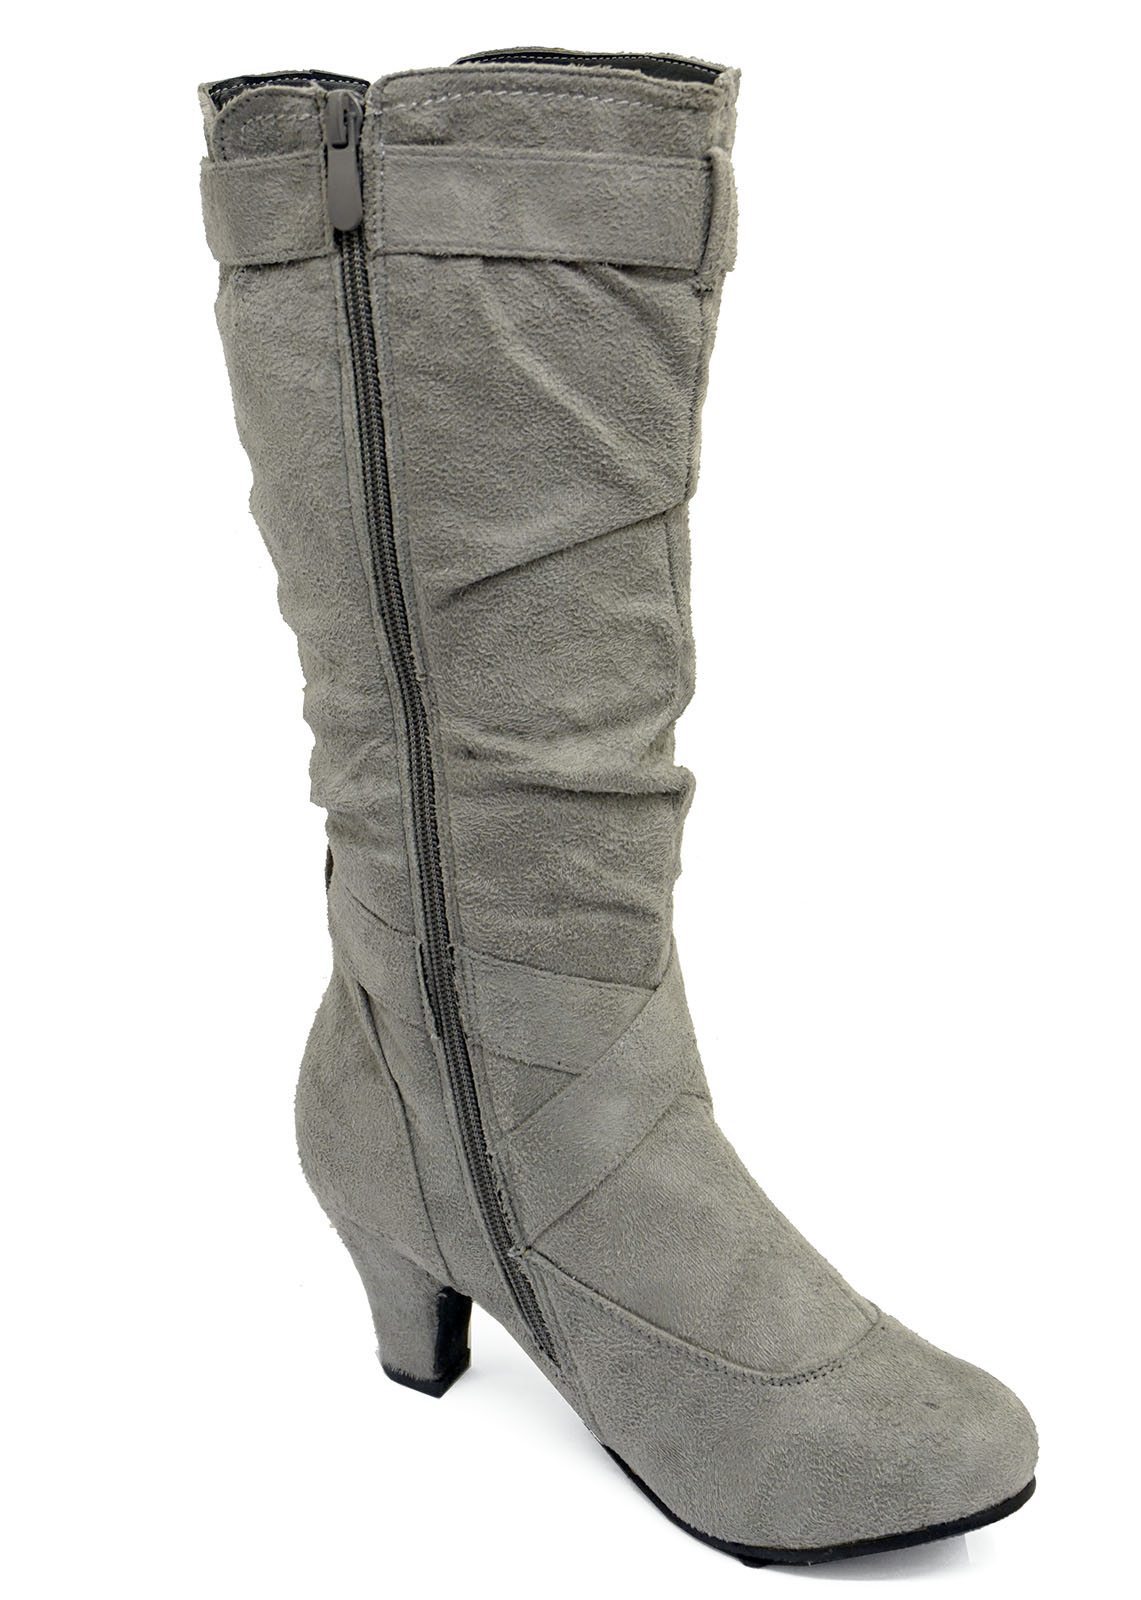 LADIES-GREY-ZIP-UP-BIKER-SLOUCH-RUCHED-TALL-KNEE-CALF-LOW-HEEL-BOOTS-SHOES-4-10 thumbnail 22